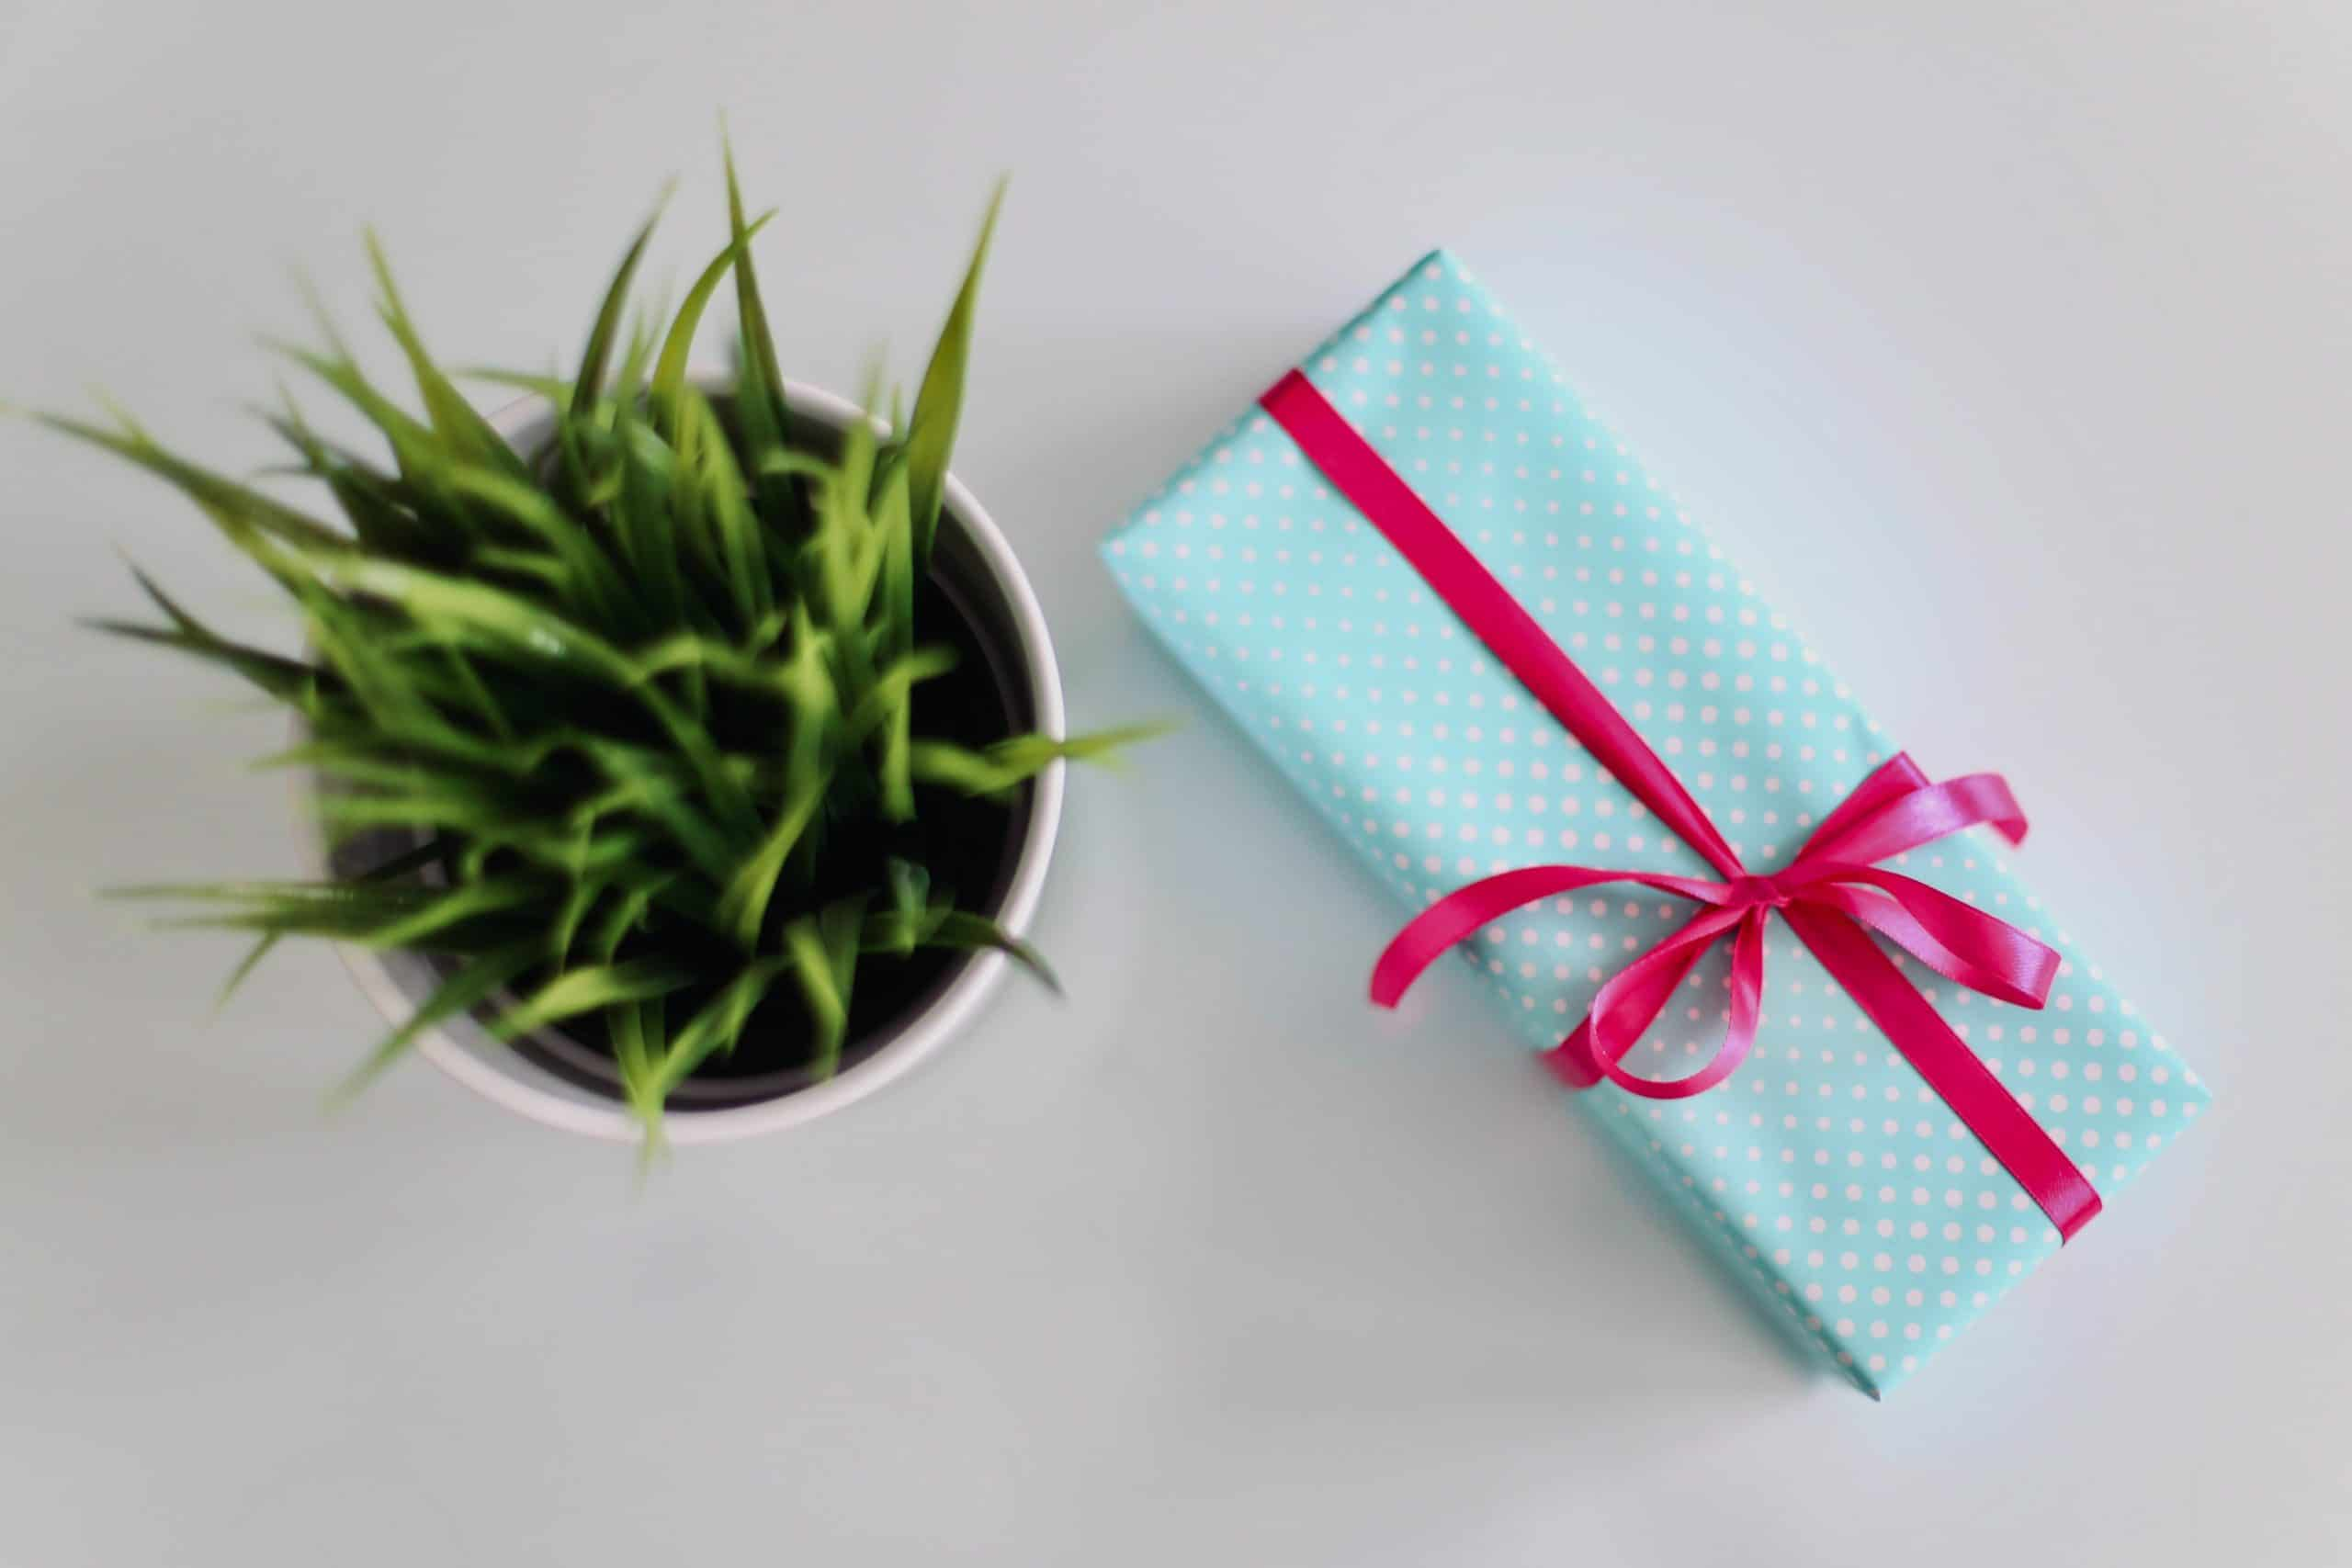 Wrapped Gift and Plant